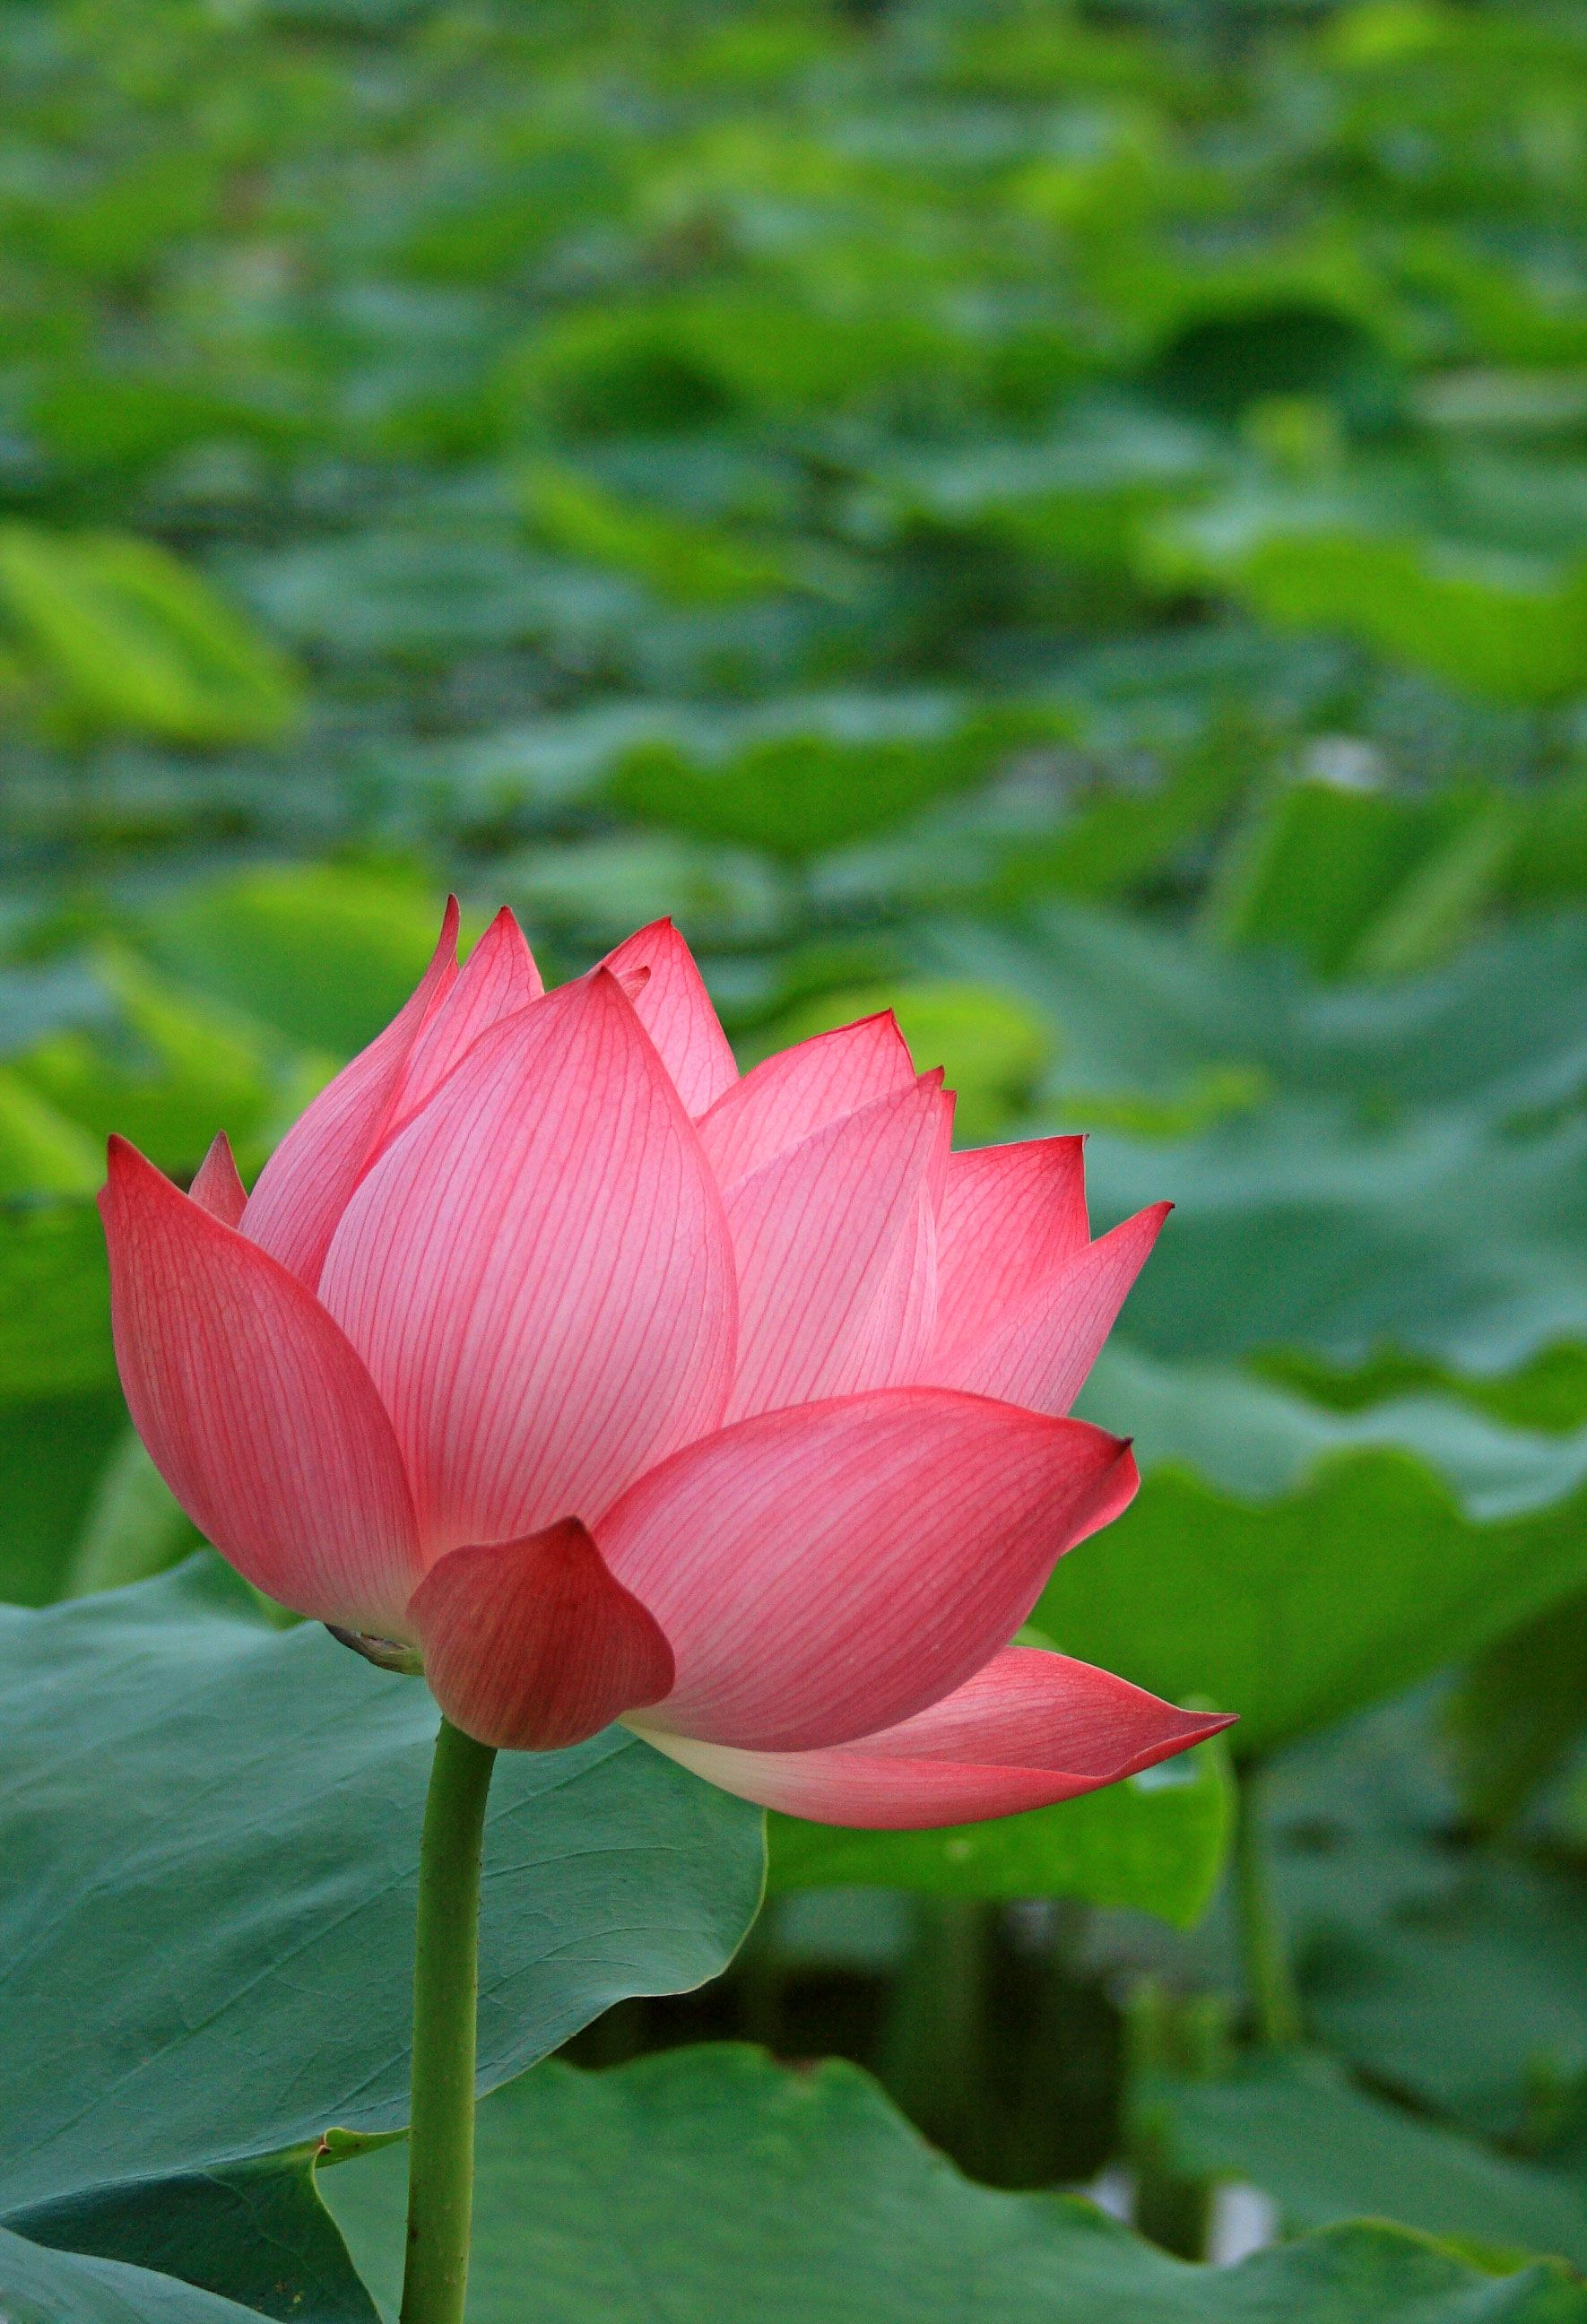 Lotus flower vietnams national flower lotus flower pinterest lotus flower vietnams national flower izmirmasajfo